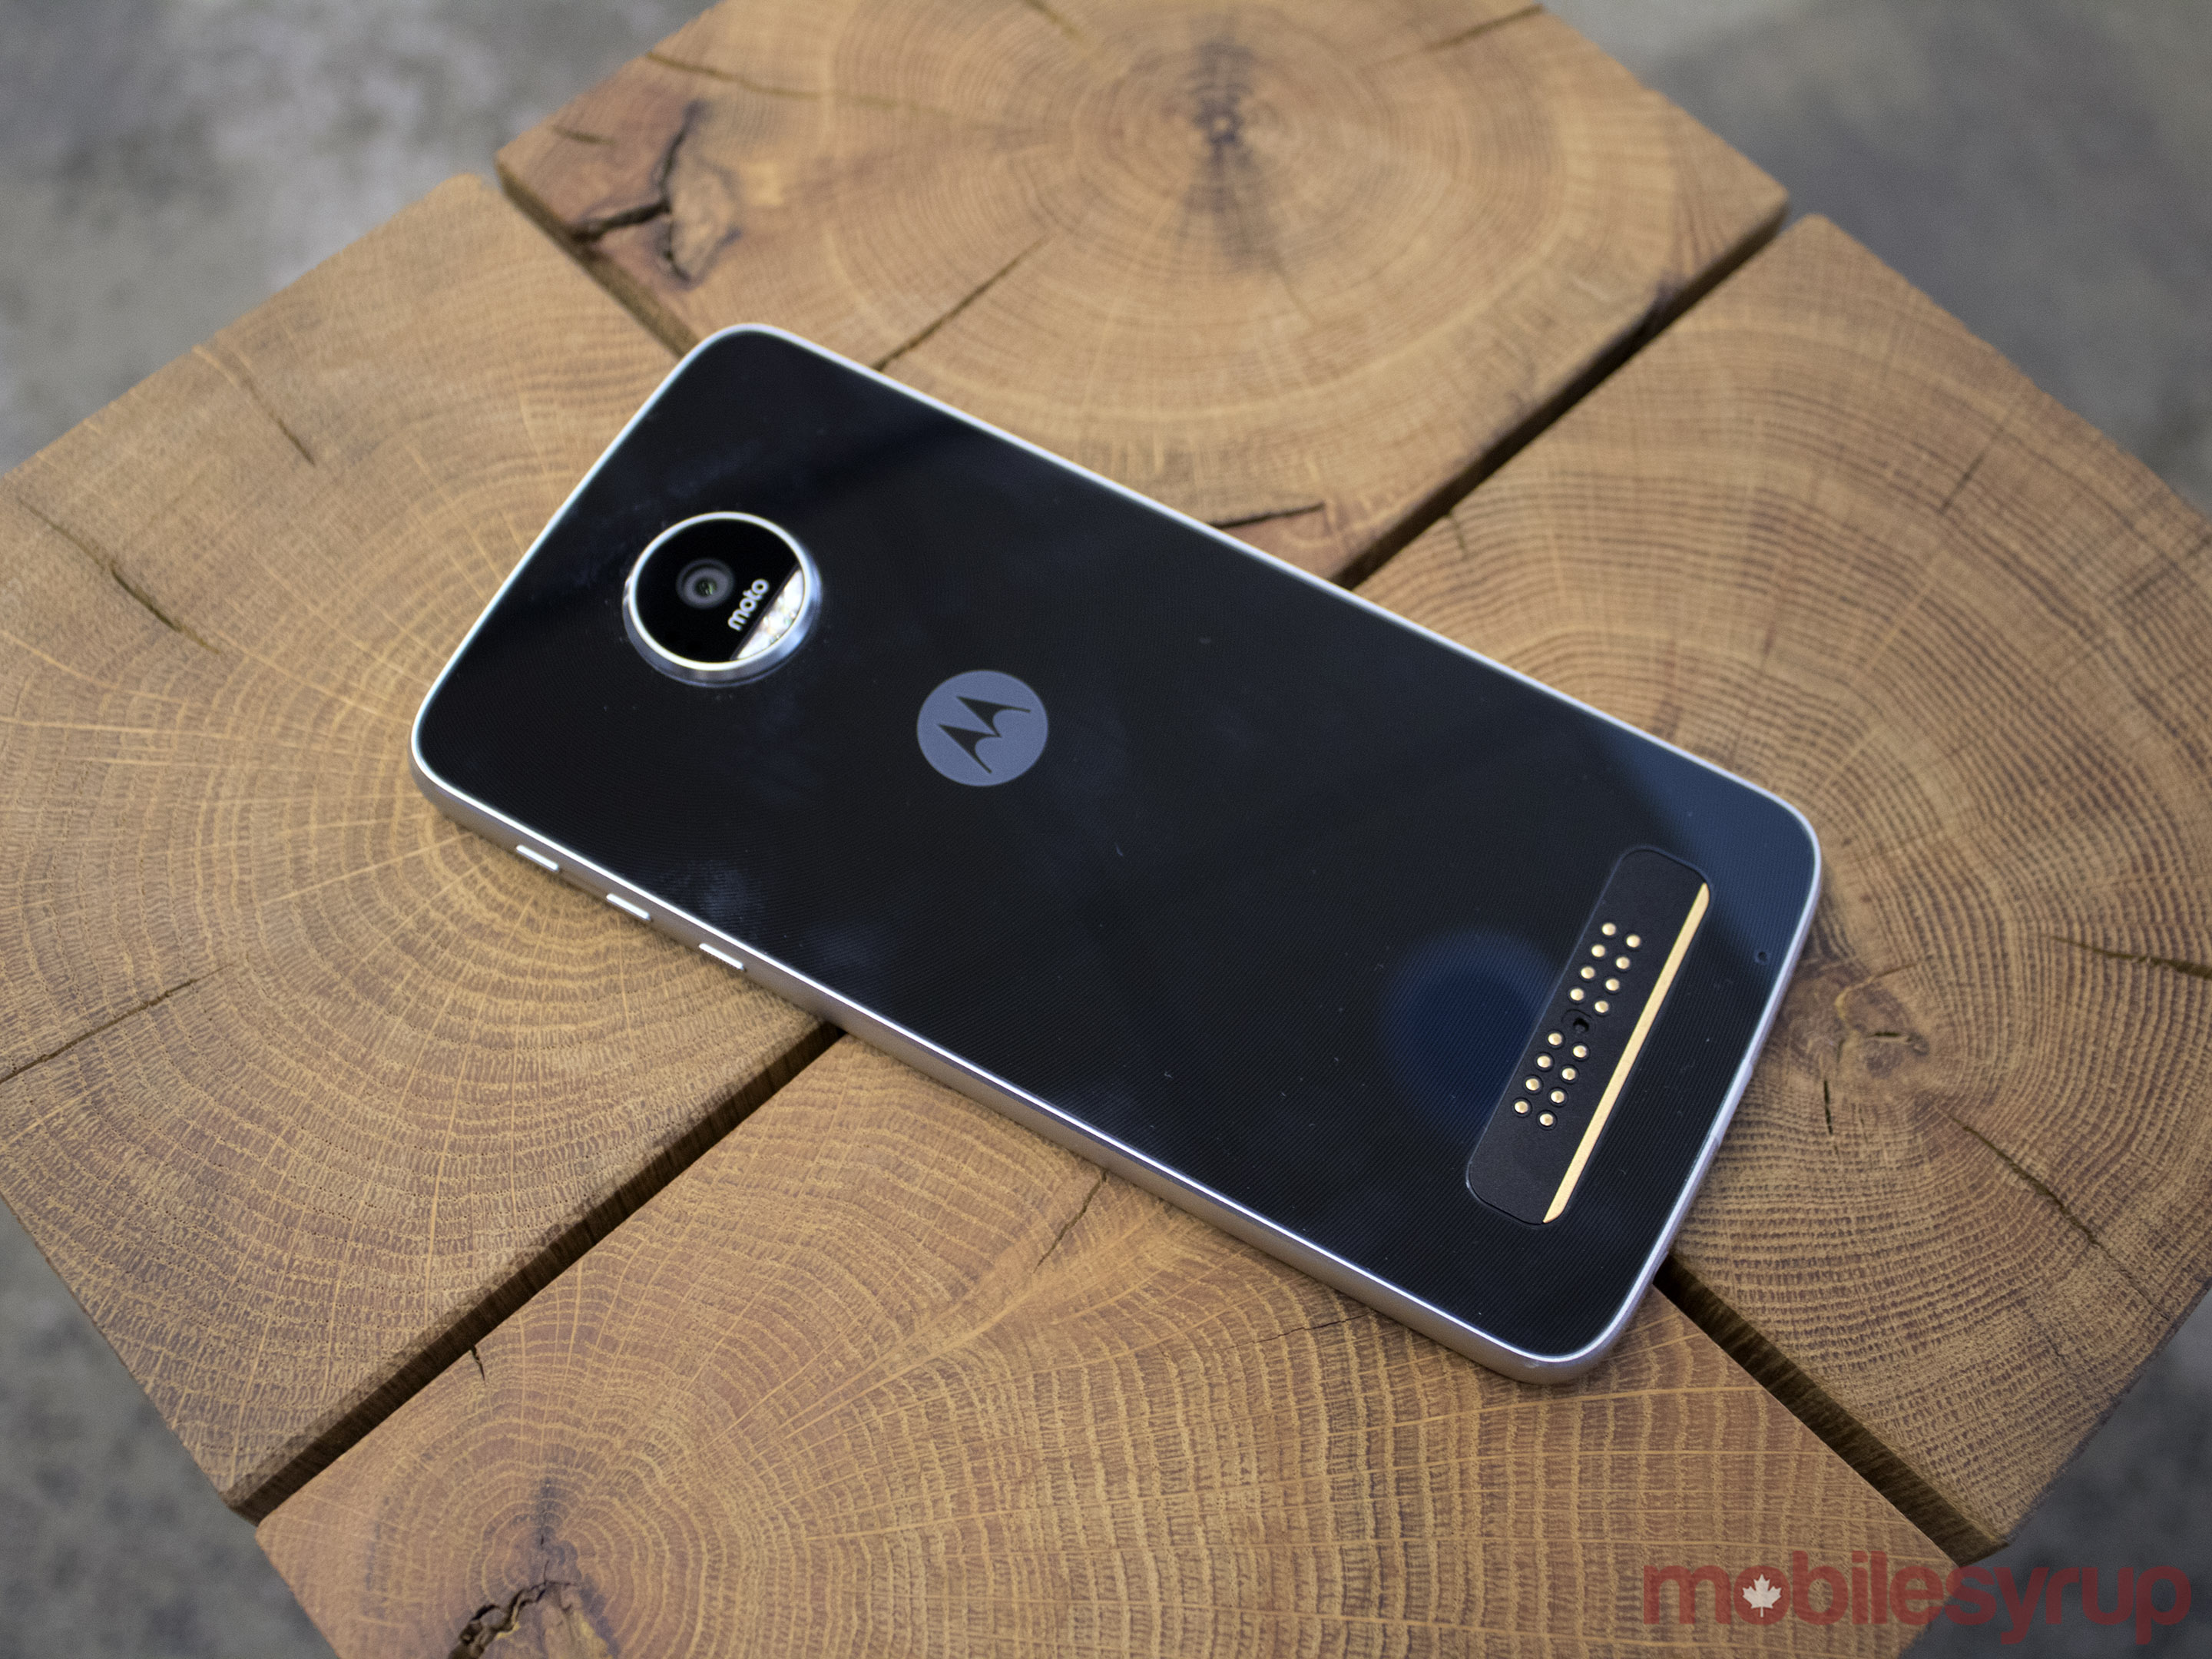 Moto z moto z play now available in india price specifications and - Not The Best Not The Worst